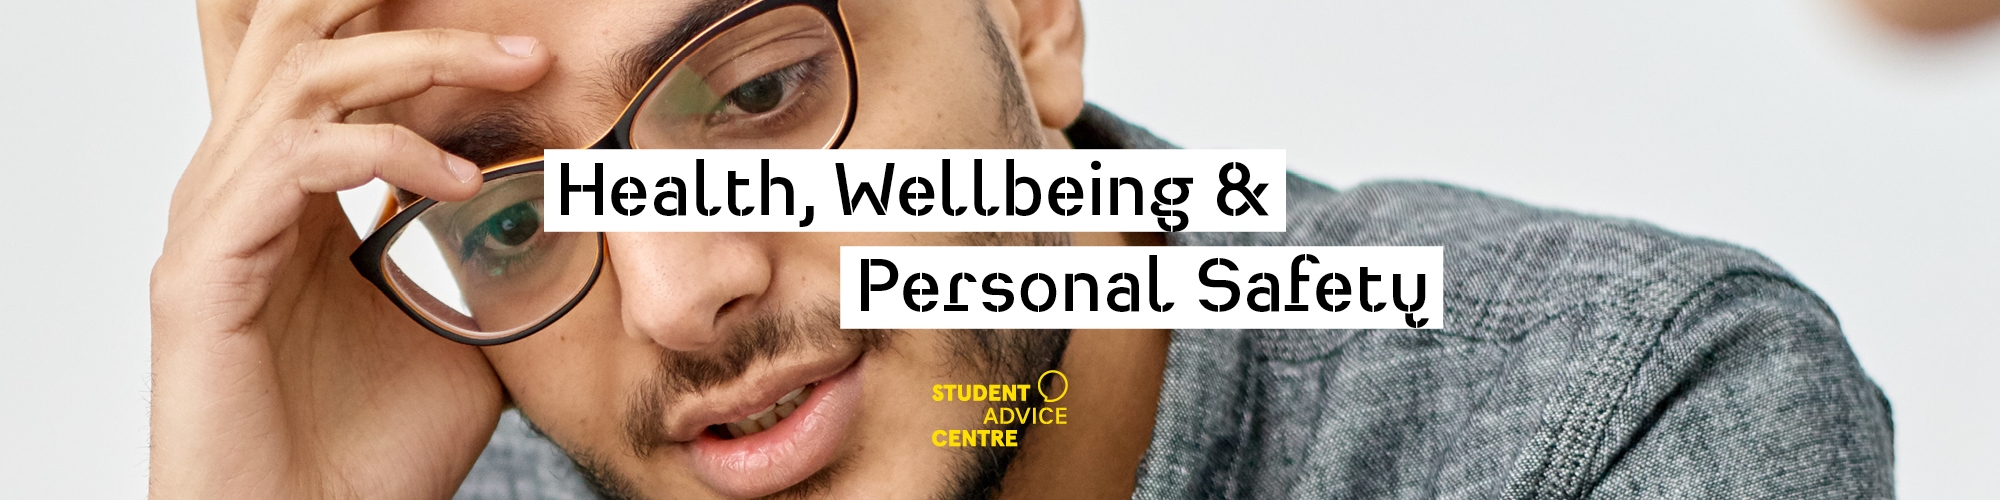 It's important to take care of yourself. Click here for advice and help on keeping yourself healthy and safe at Hallam.